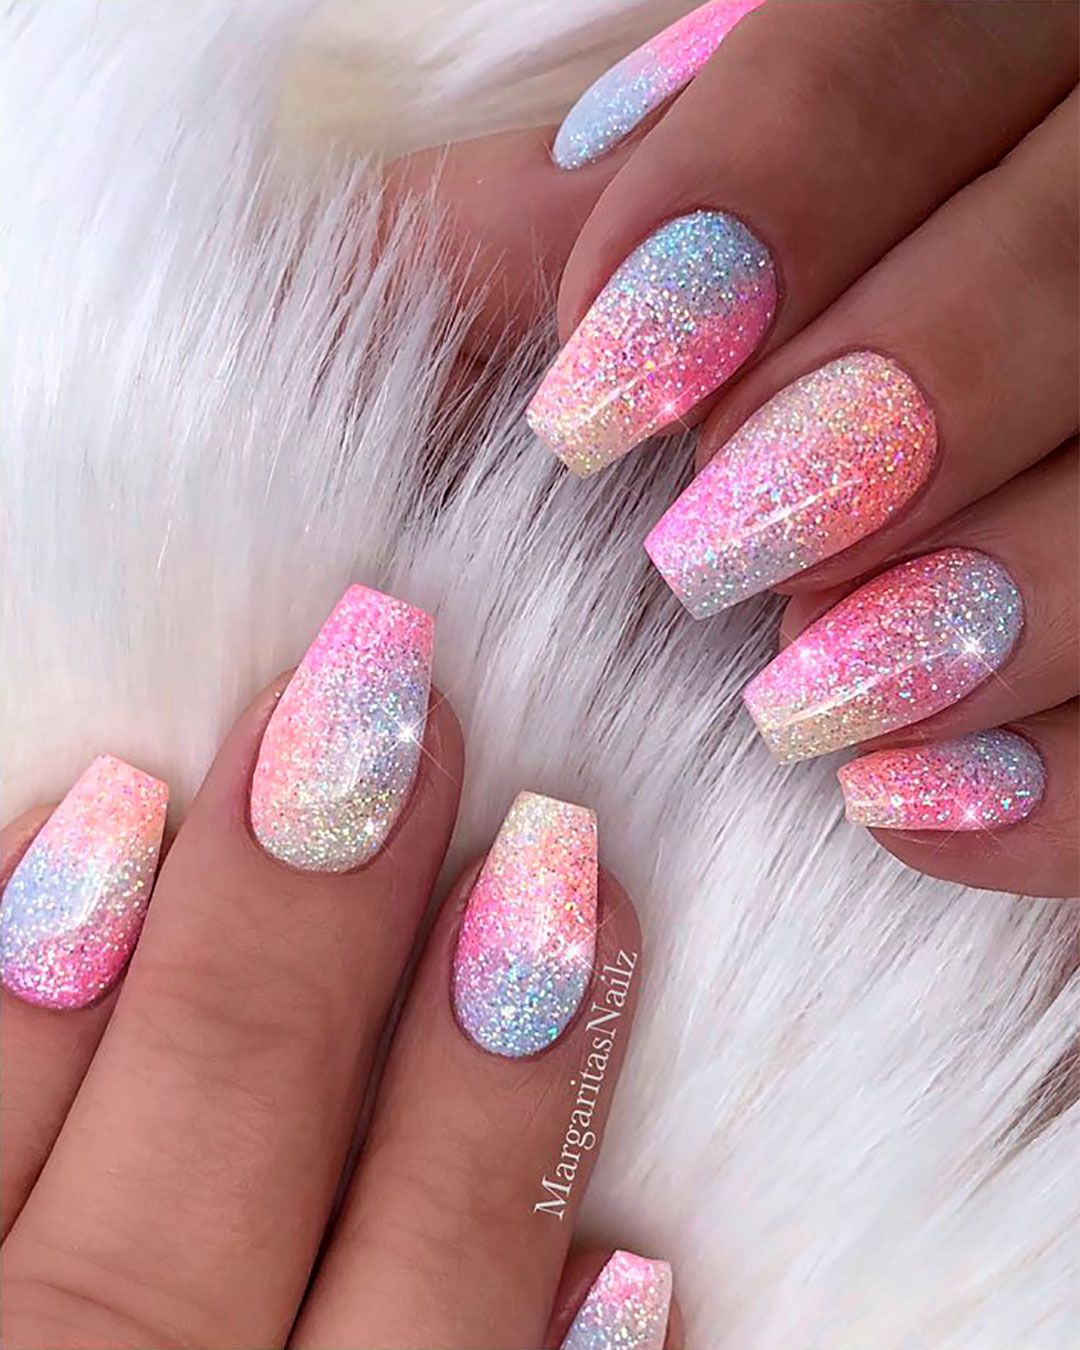 Cute Unicorn Nails Acrylic Design Sparkly Acrylic Nails Unicorn Nail Art Shiny Nails Designs